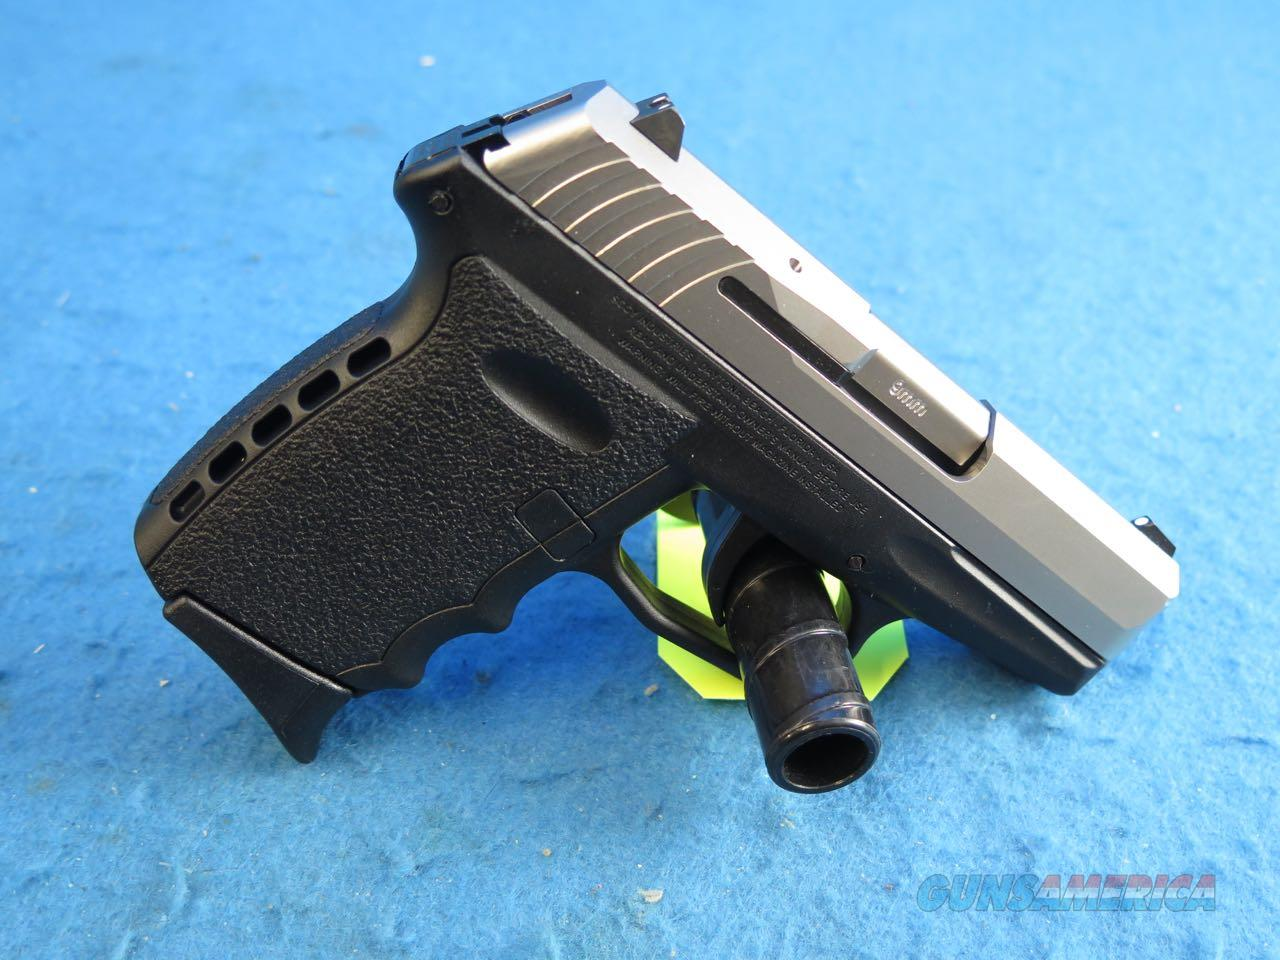 SCCY Model CPX-2 TT Black/SS 9mm Pistol **New**  Guns > Pistols > SCCY Pistols > CPX2